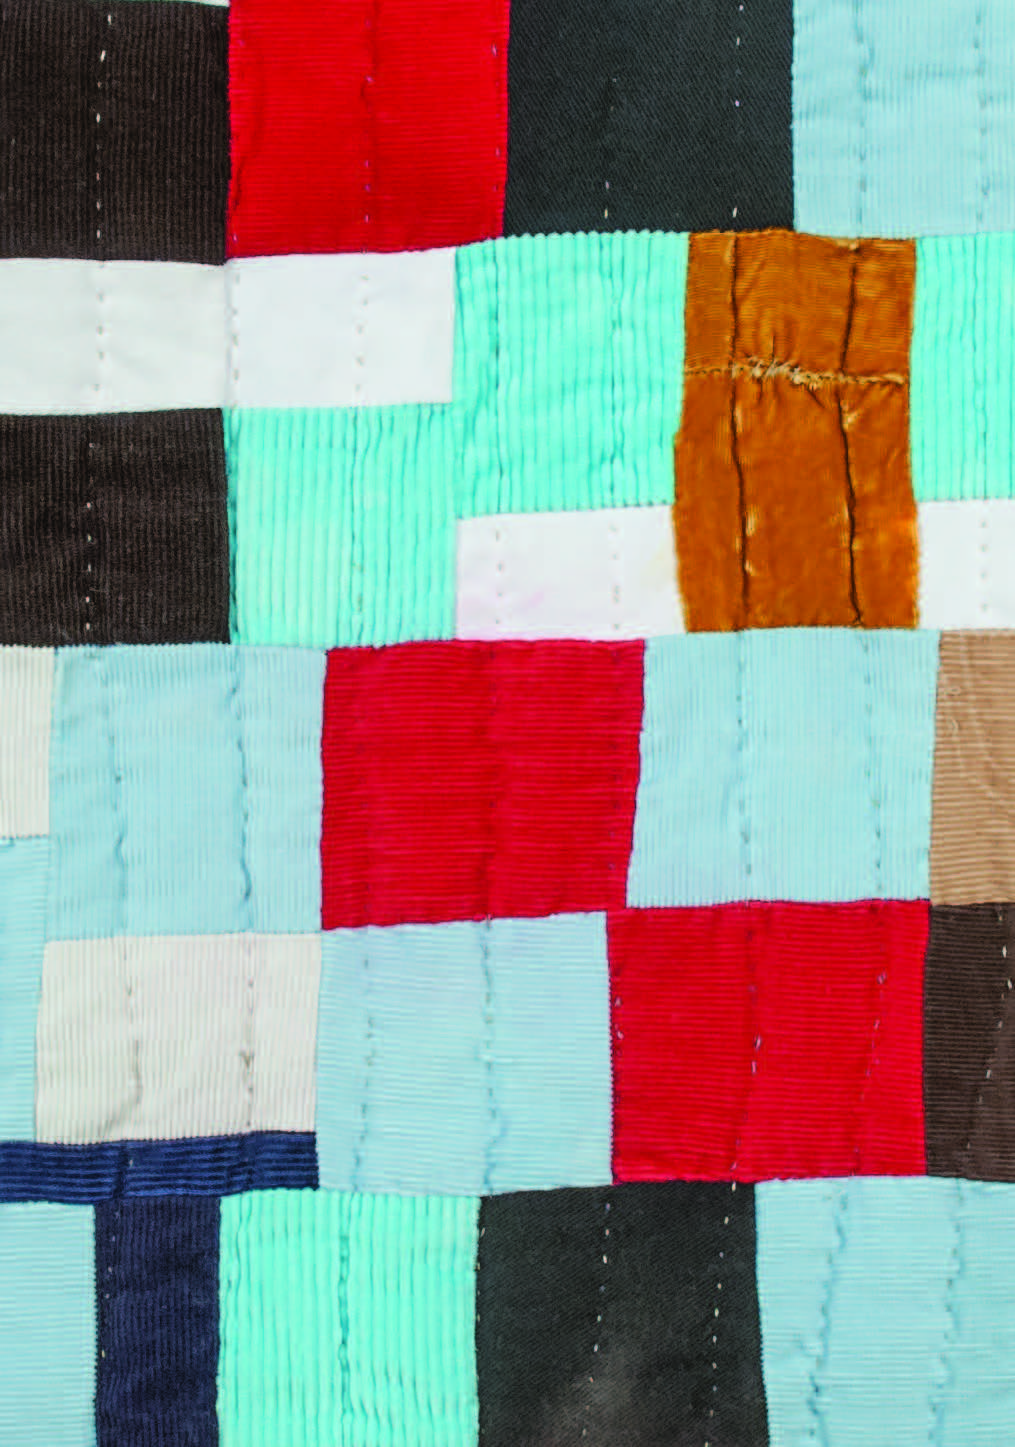 Detail of Blocked Out, with velvet square. Photograph by Blair Clark.